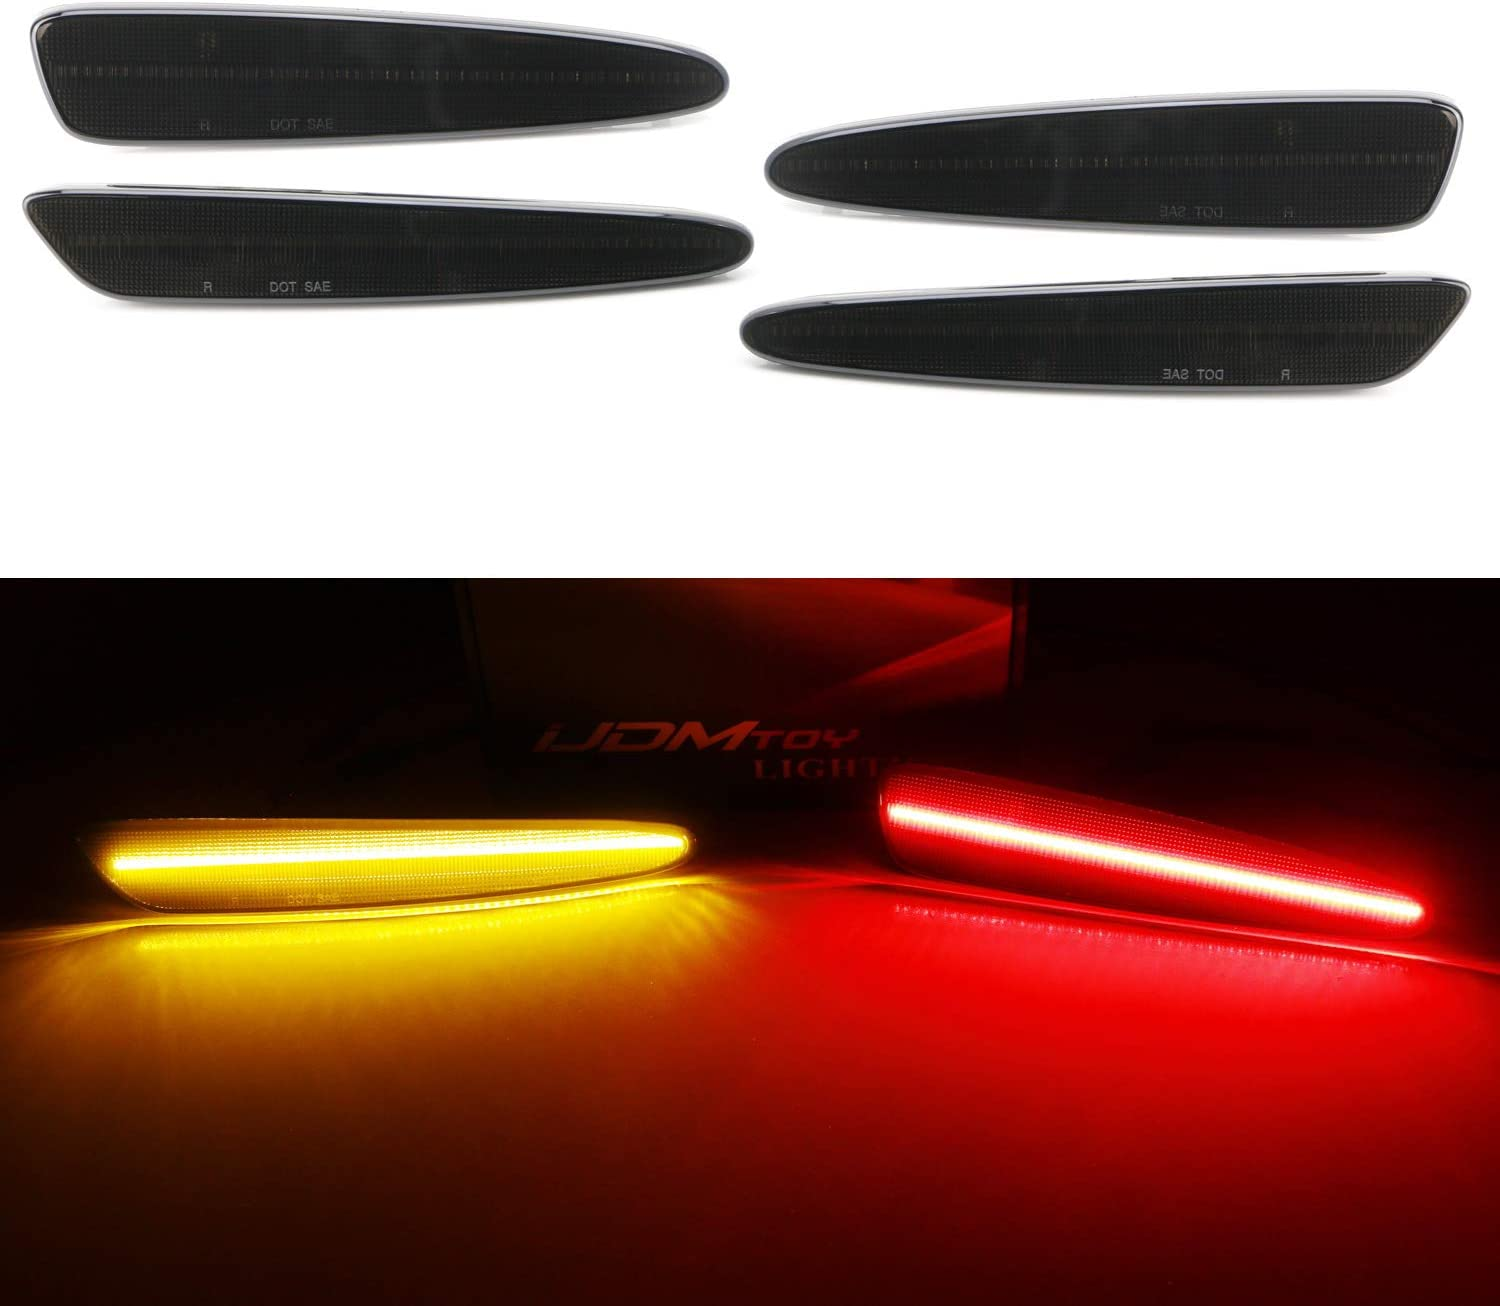 iJDMTOY Clear Lens Full LED Strip Rear Side Marker Light Kit Compatible With 1999-2004 Chevy C5 Corvette Replace OEM Sidemarker Lamps Powered by 50-SMD LED